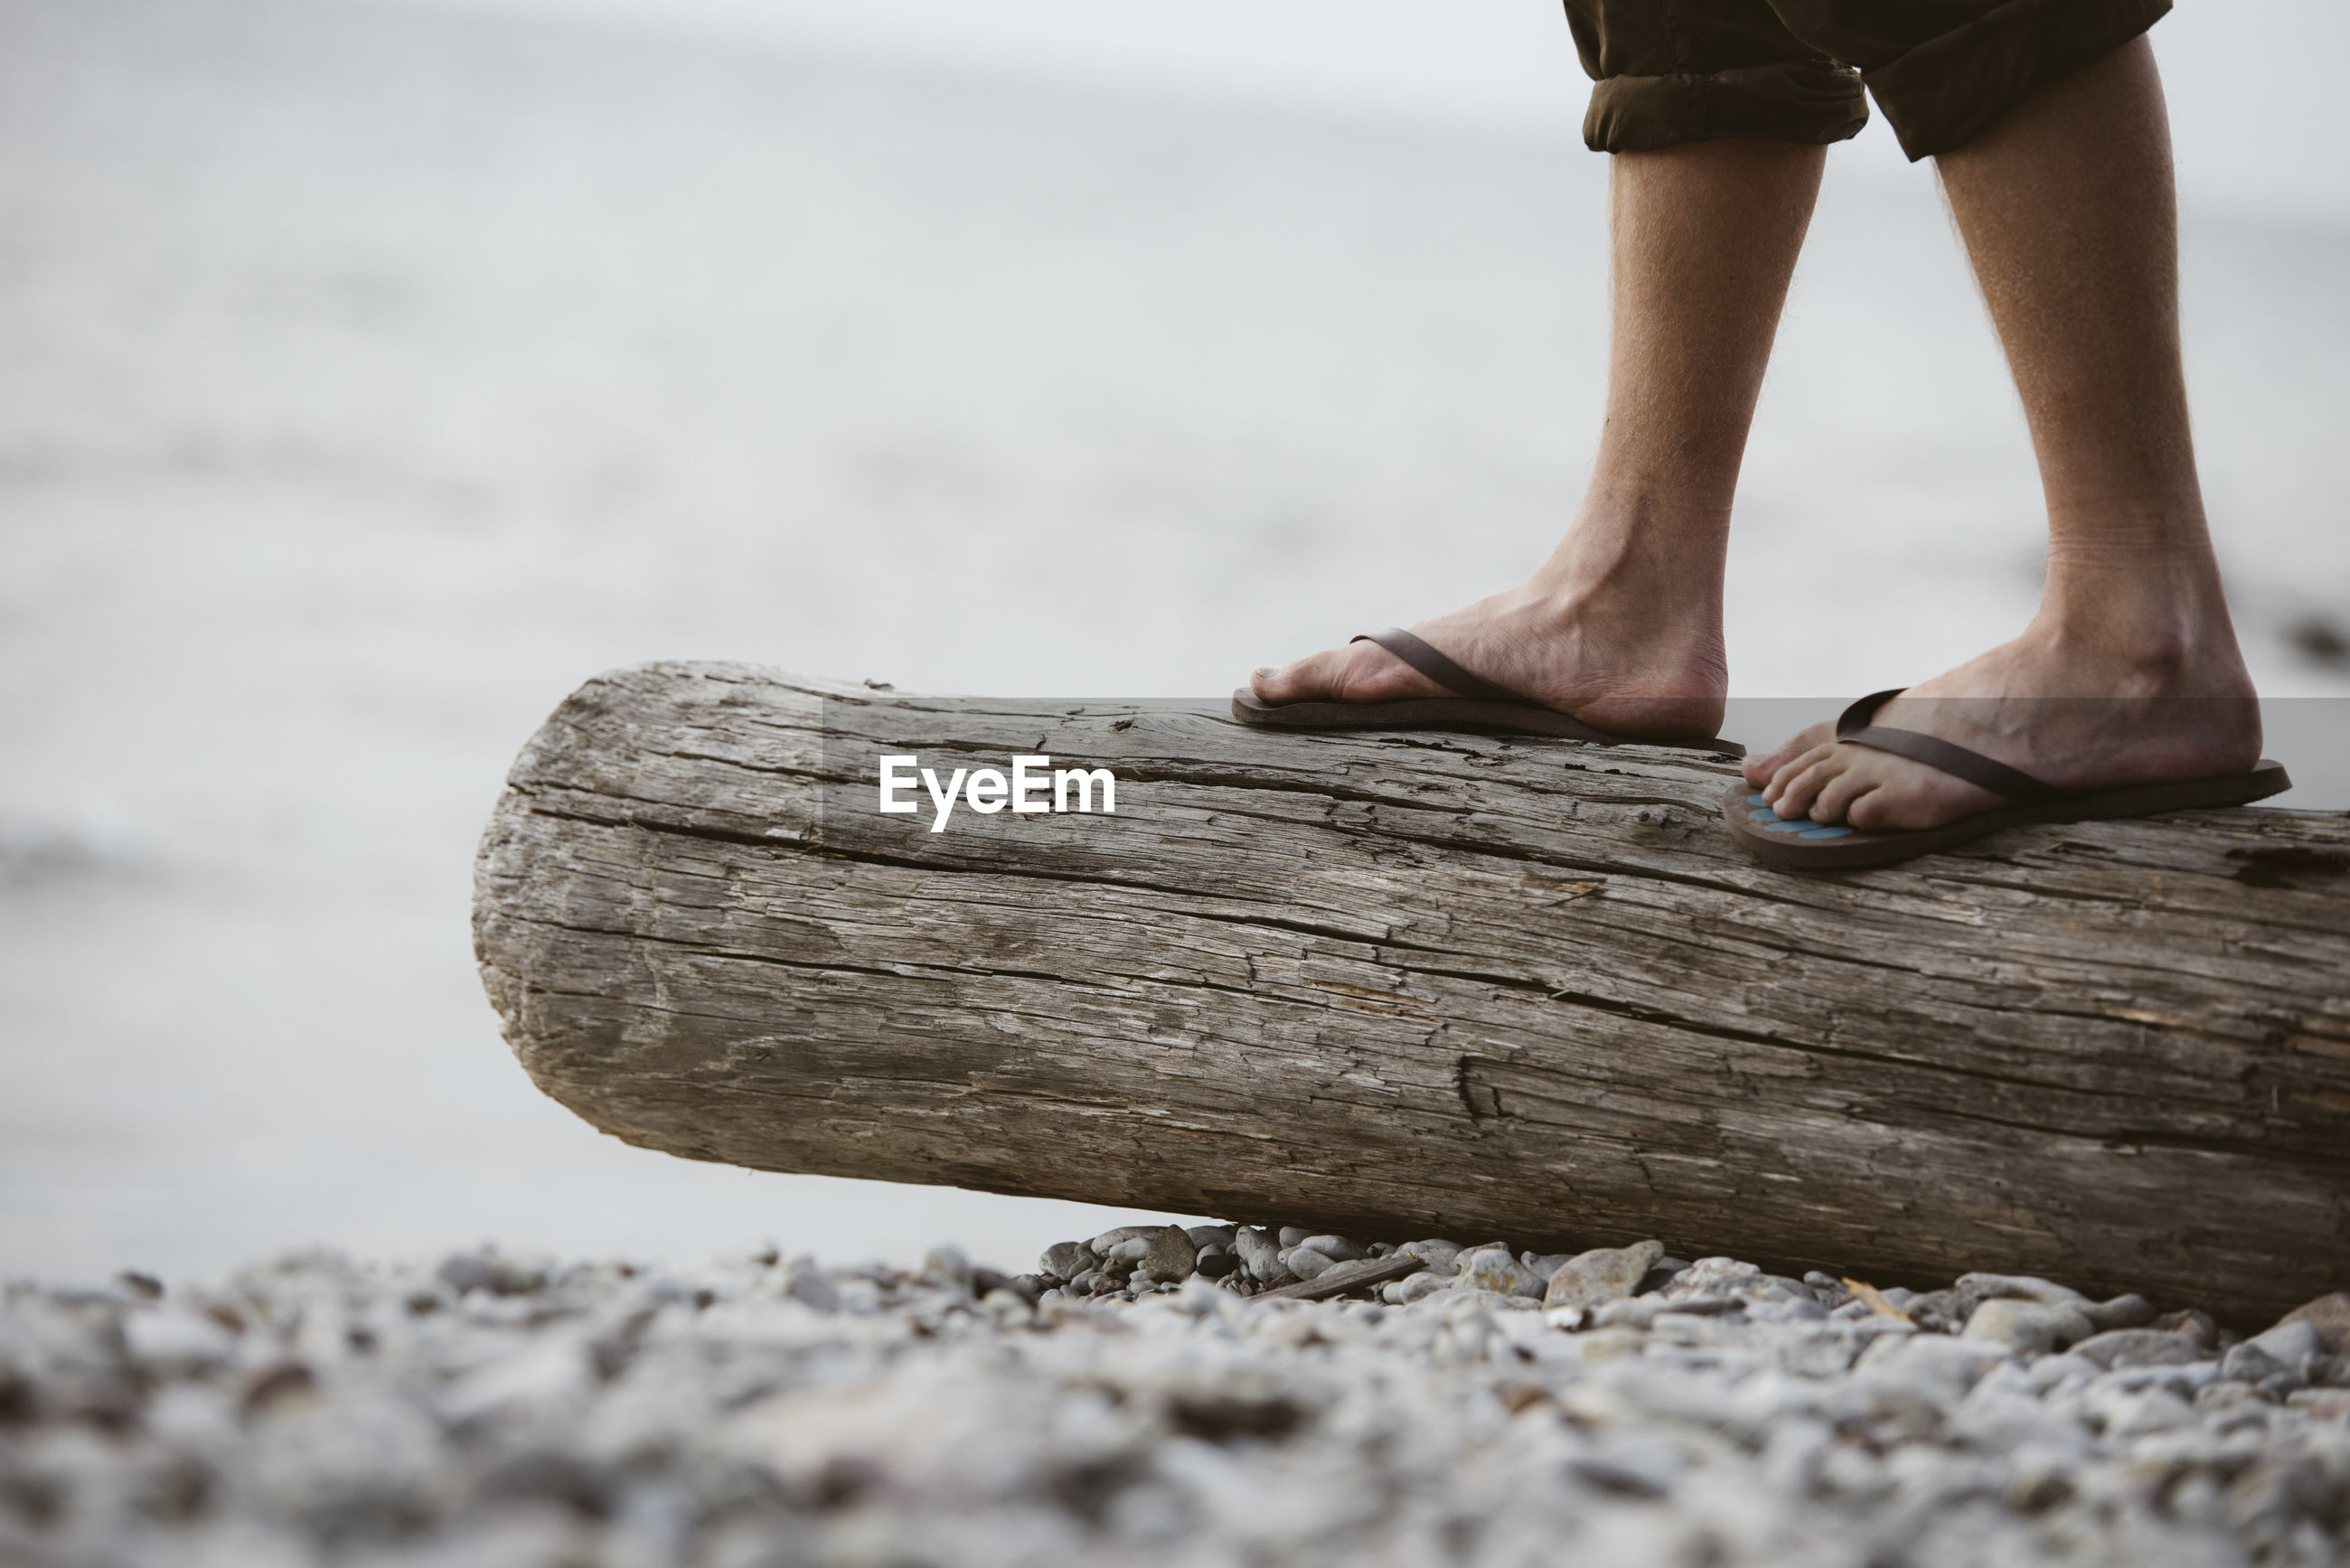 LOW SECTION OF PERSON STANDING ON WOODEN POST